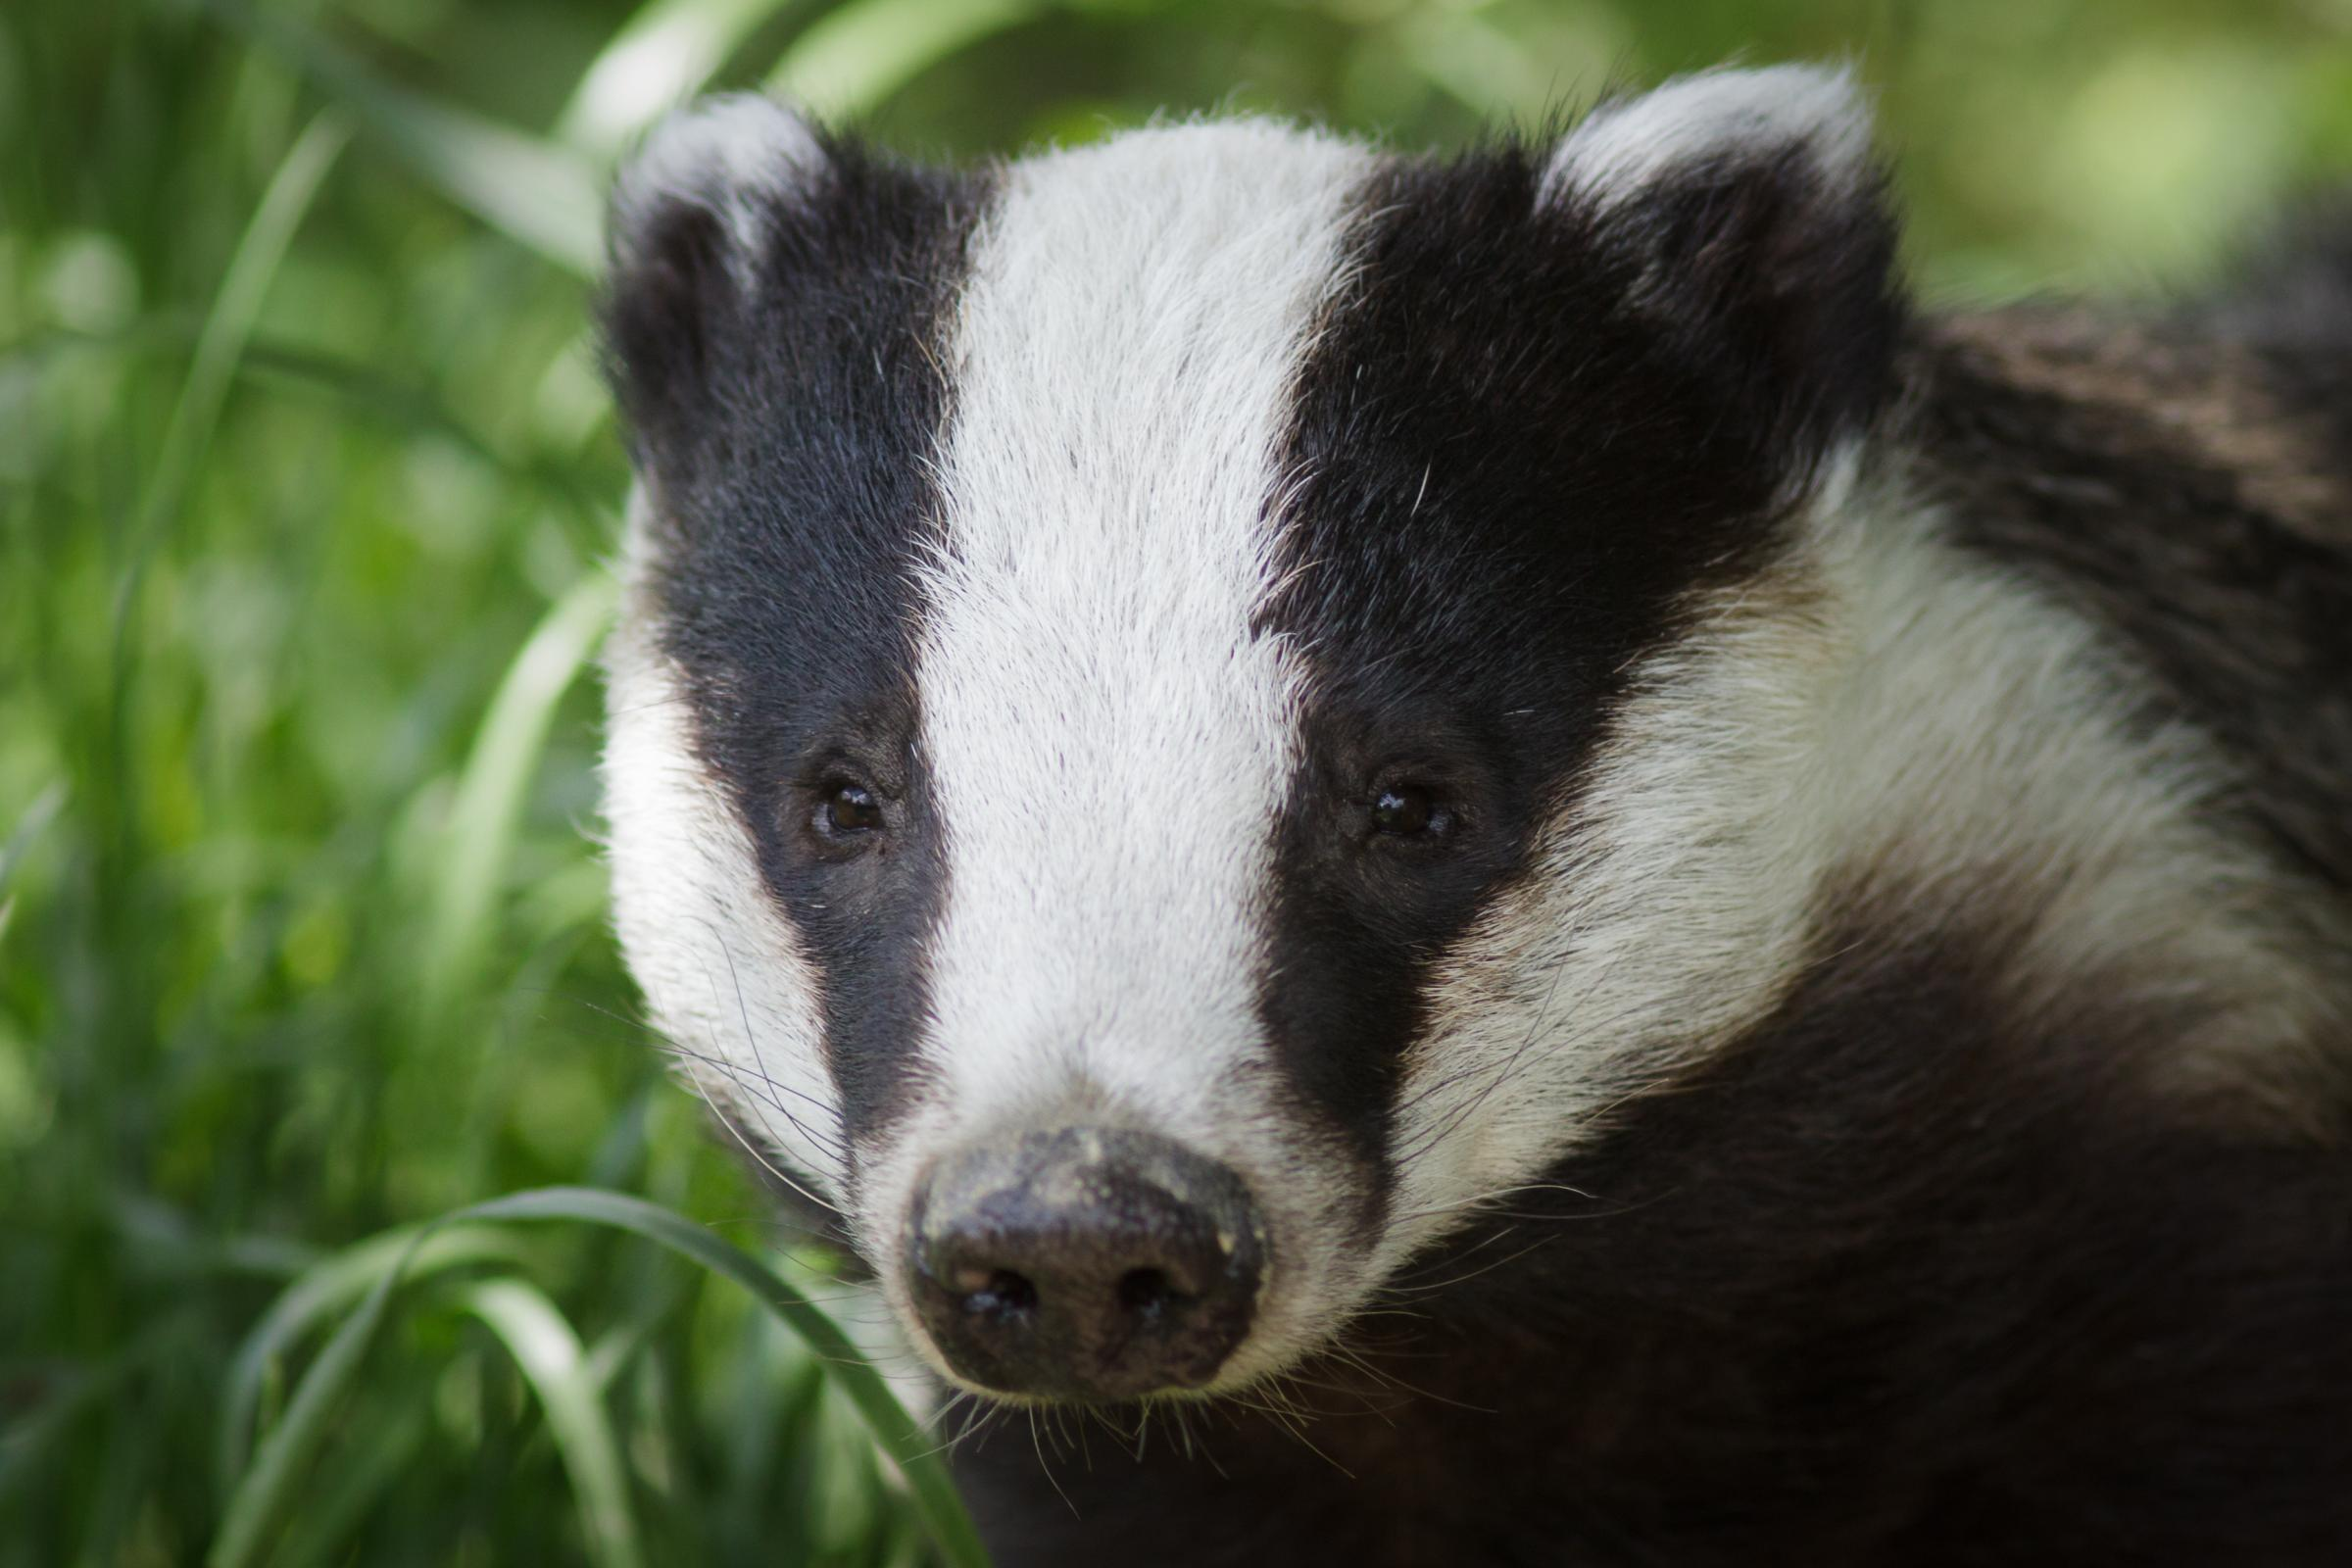 Paignton Zoo is vaccinating wild badgers and testing its exotic animals for TB